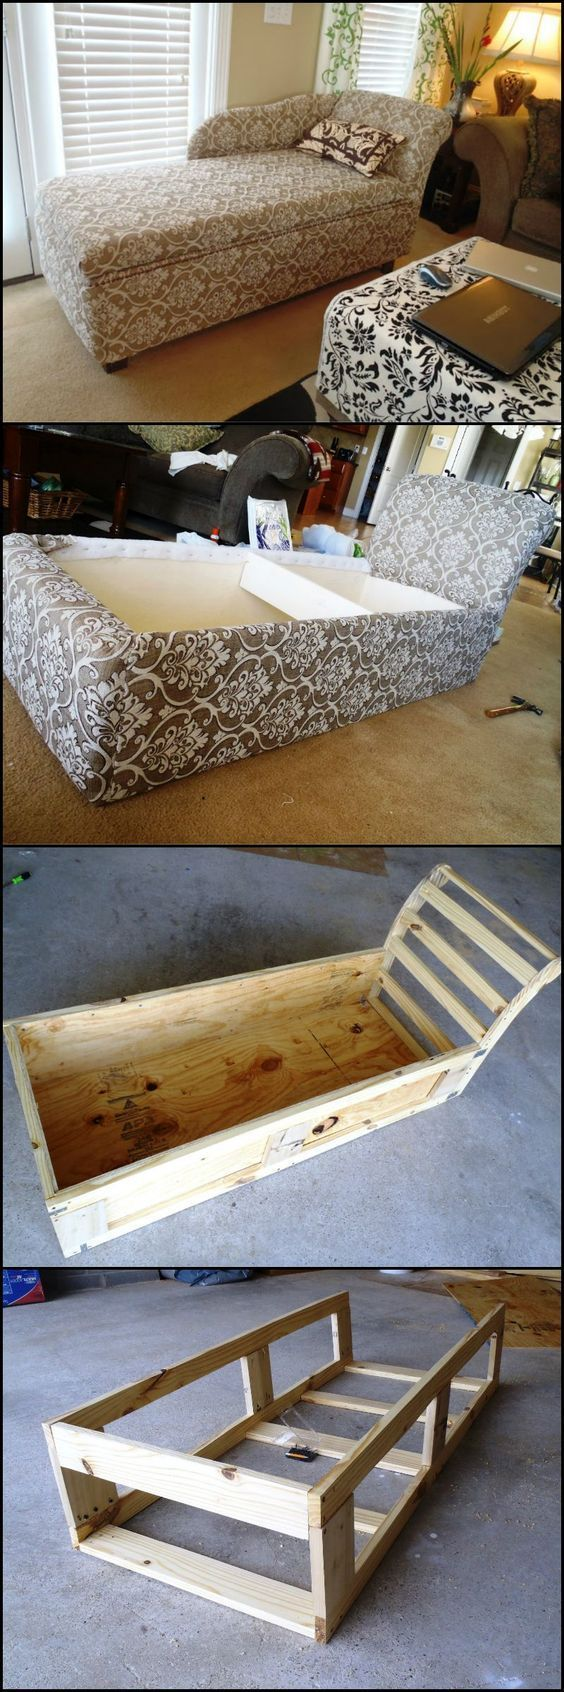 Diy Chaise Lounge Sofa Bed With Storage | Furniture Inspiration ...